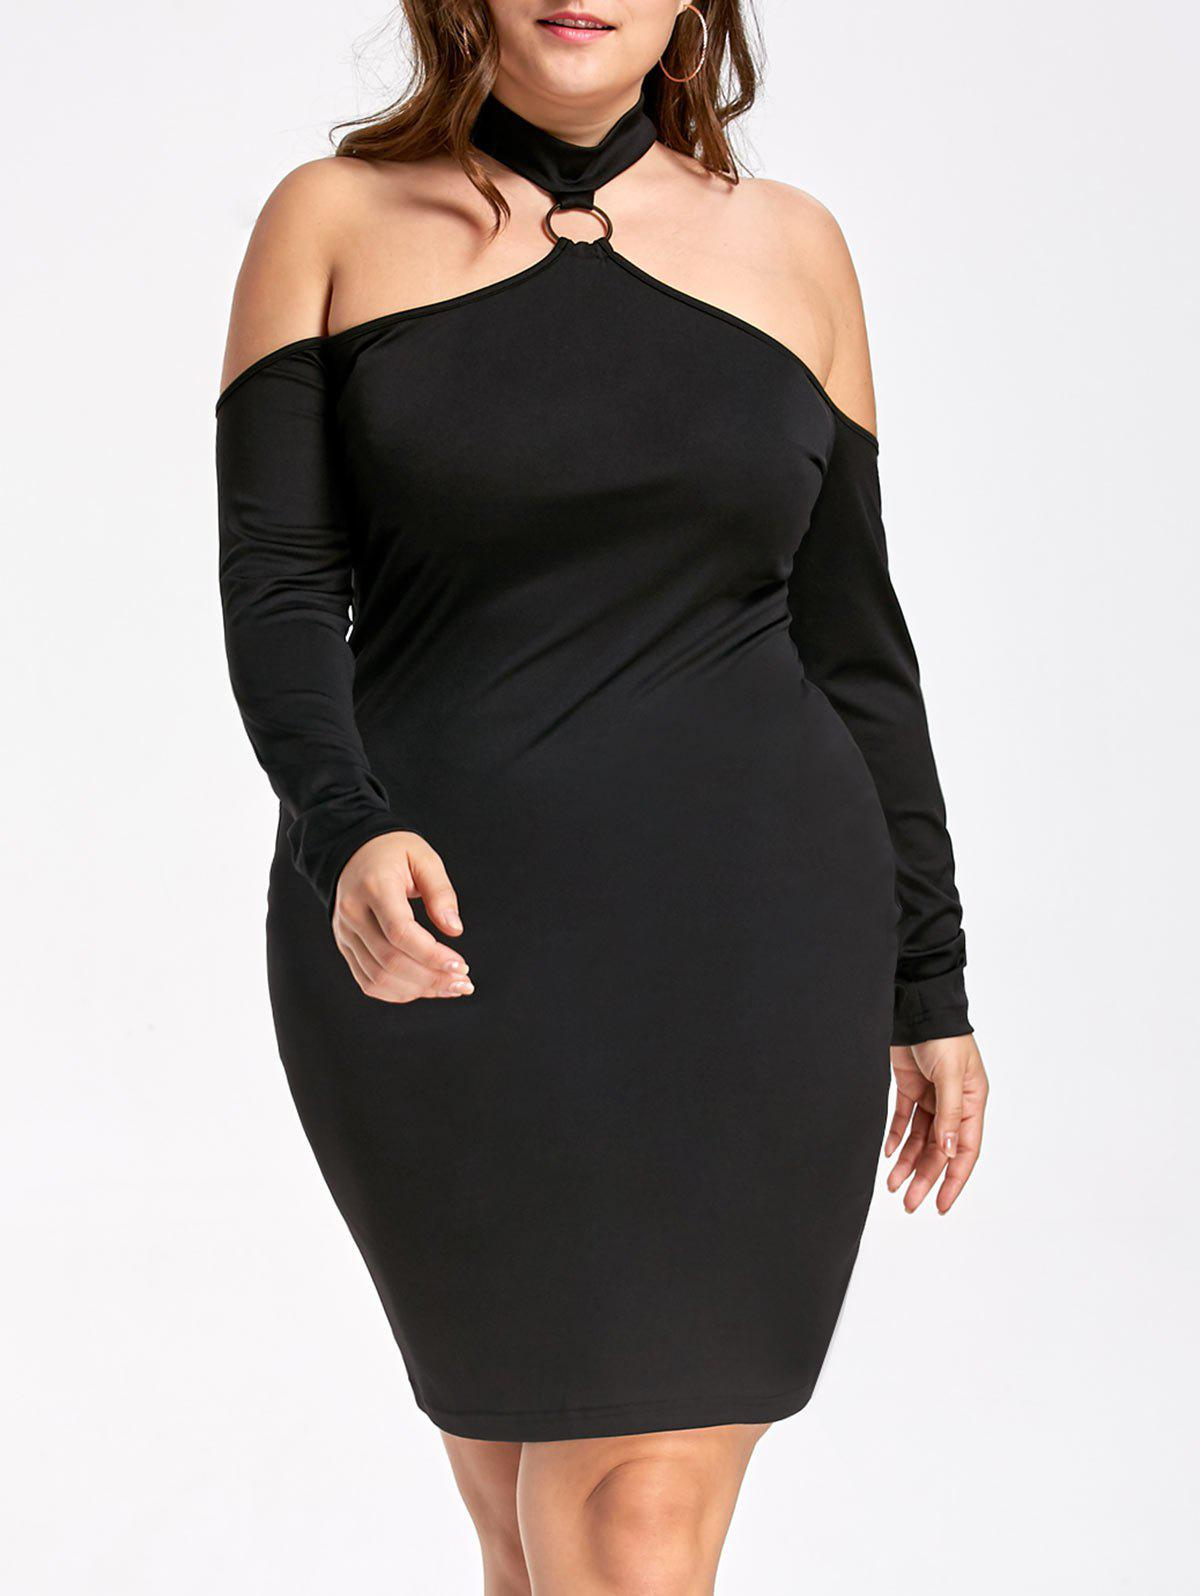 Plus Size Cold Shoulder Long Sleeve DressWOMEN<br><br>Size: 2XL; Color: BLACK; Style: Brief; Material: Polyester,Spandex; Silhouette: Sheath; Dresses Length: Knee-Length; Neckline: Mock Neck; Sleeve Length: Long Sleeves; Pattern Type: Solid Color; With Belt: No; Season: Fall,Spring,Summer; Weight: 0.3000kg; Package Contents: 1 x Dress;